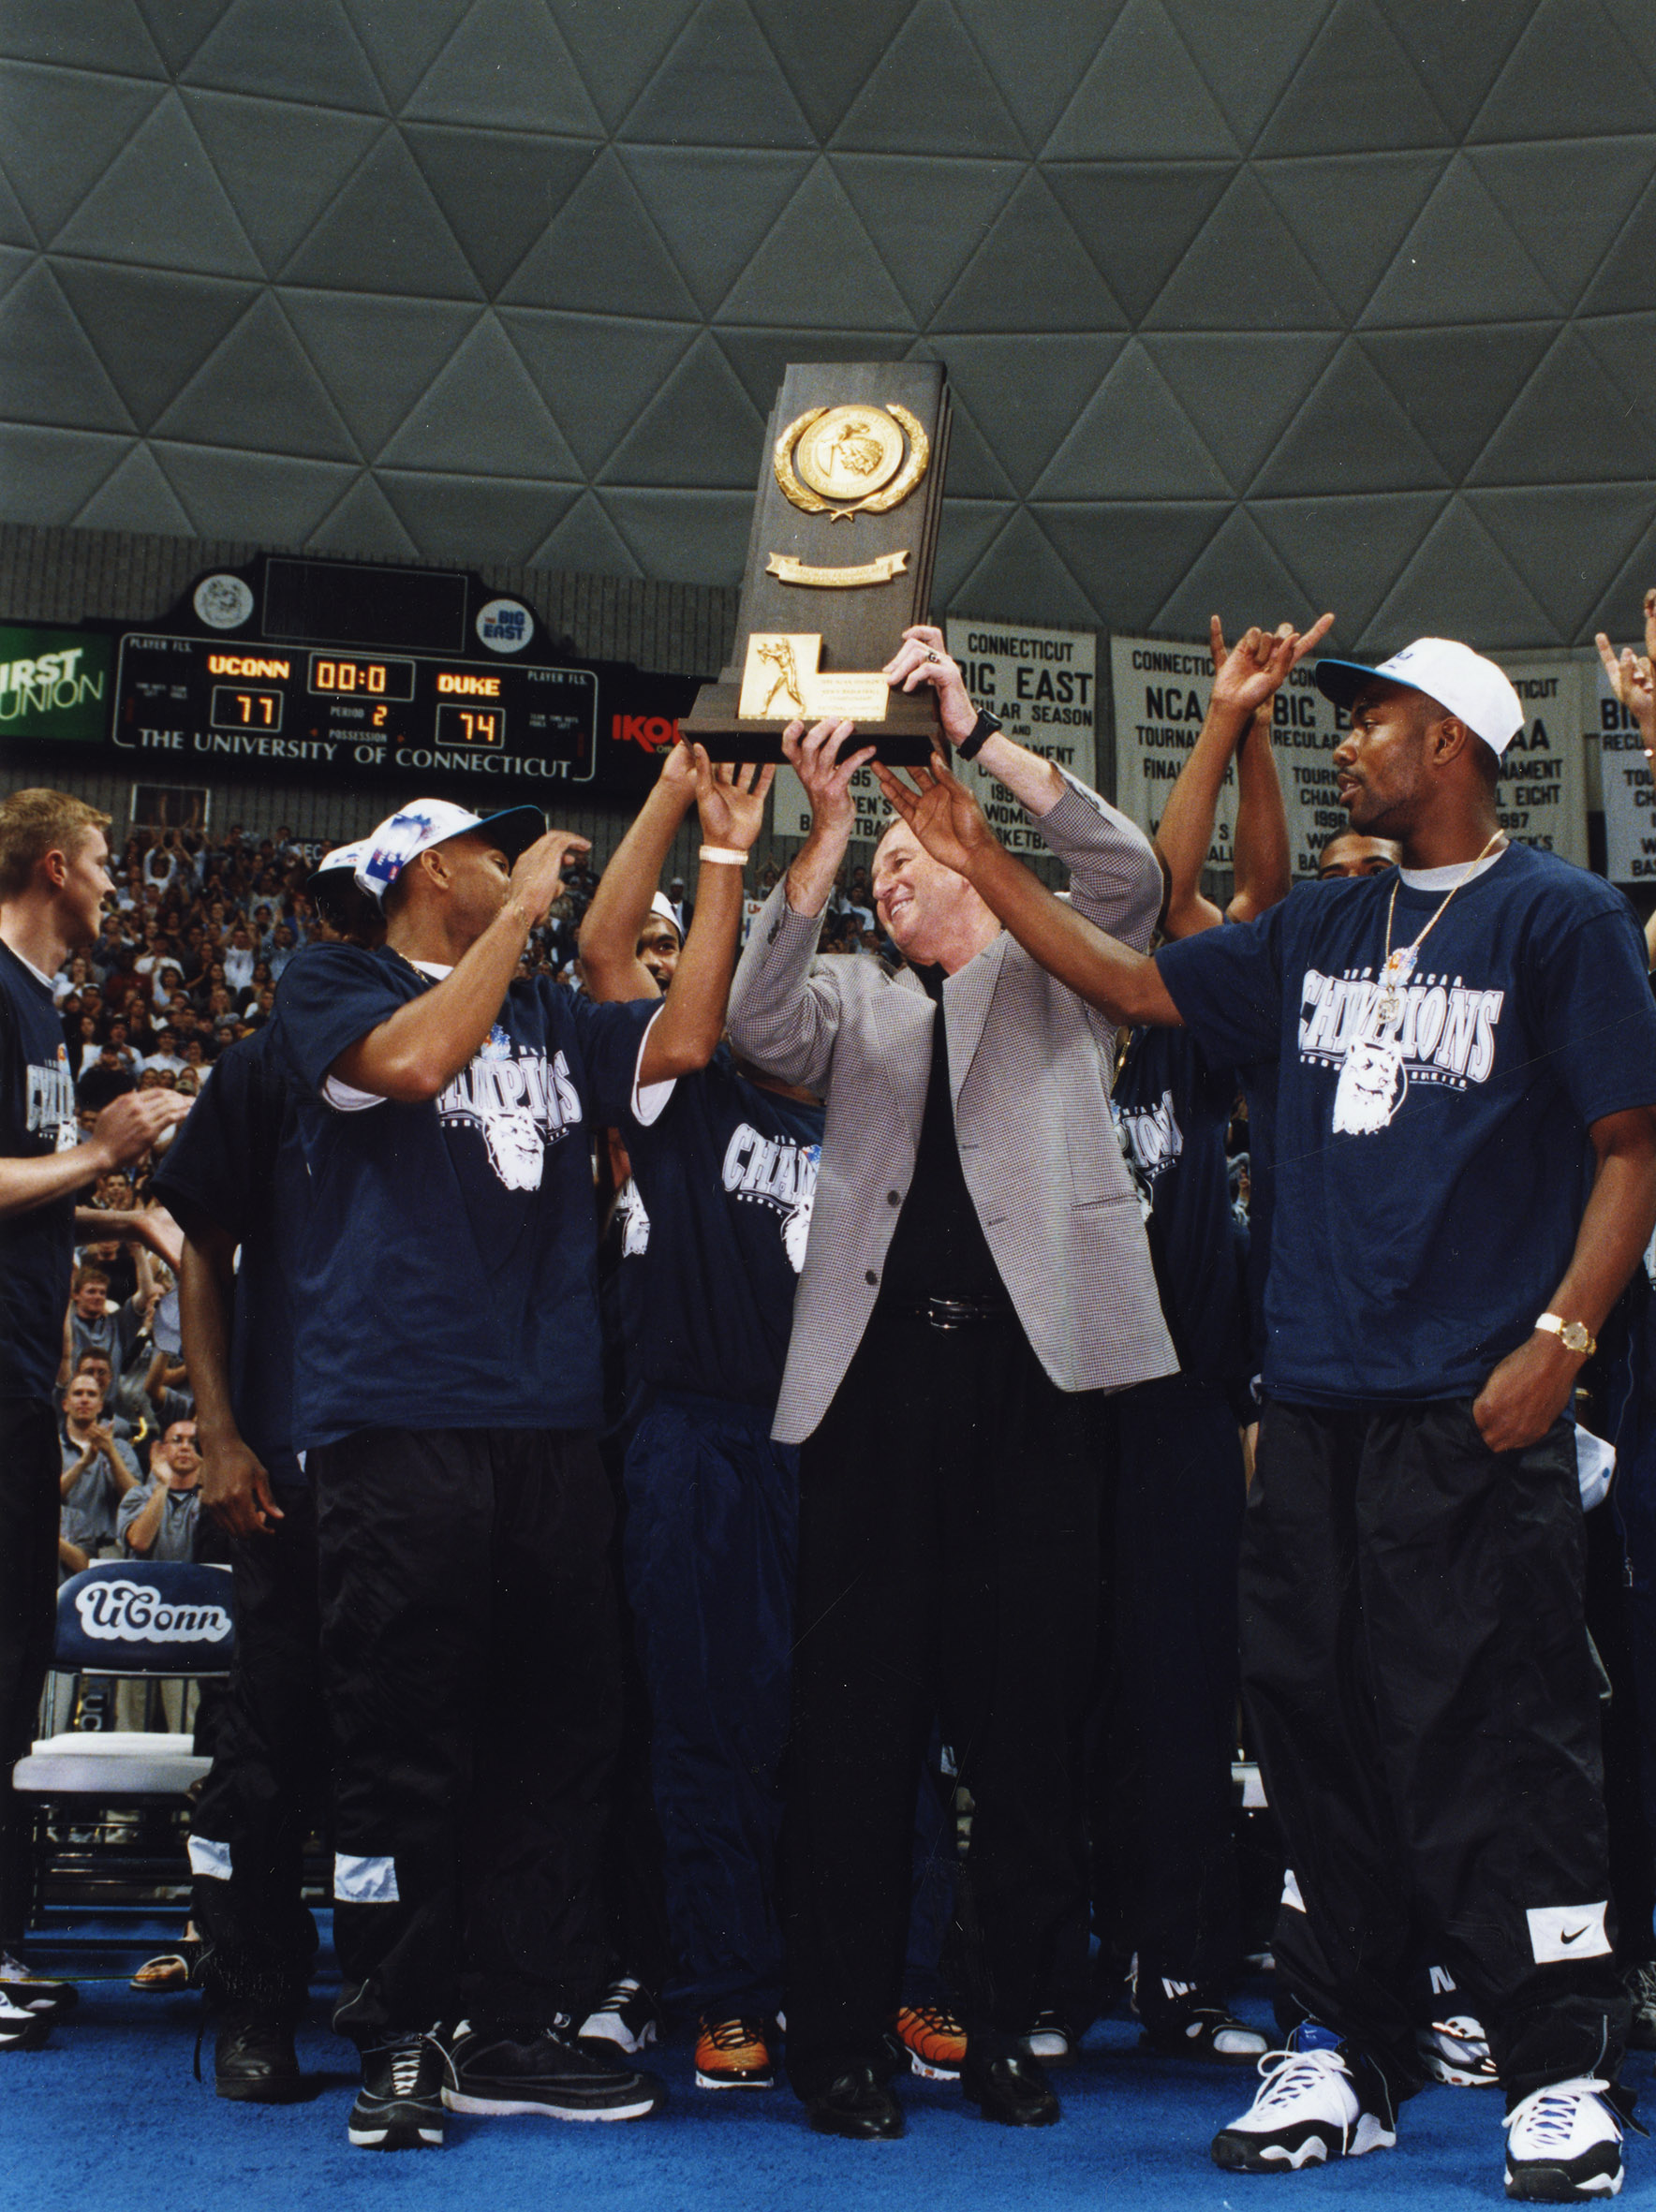 1999 Men's Basketball Championship